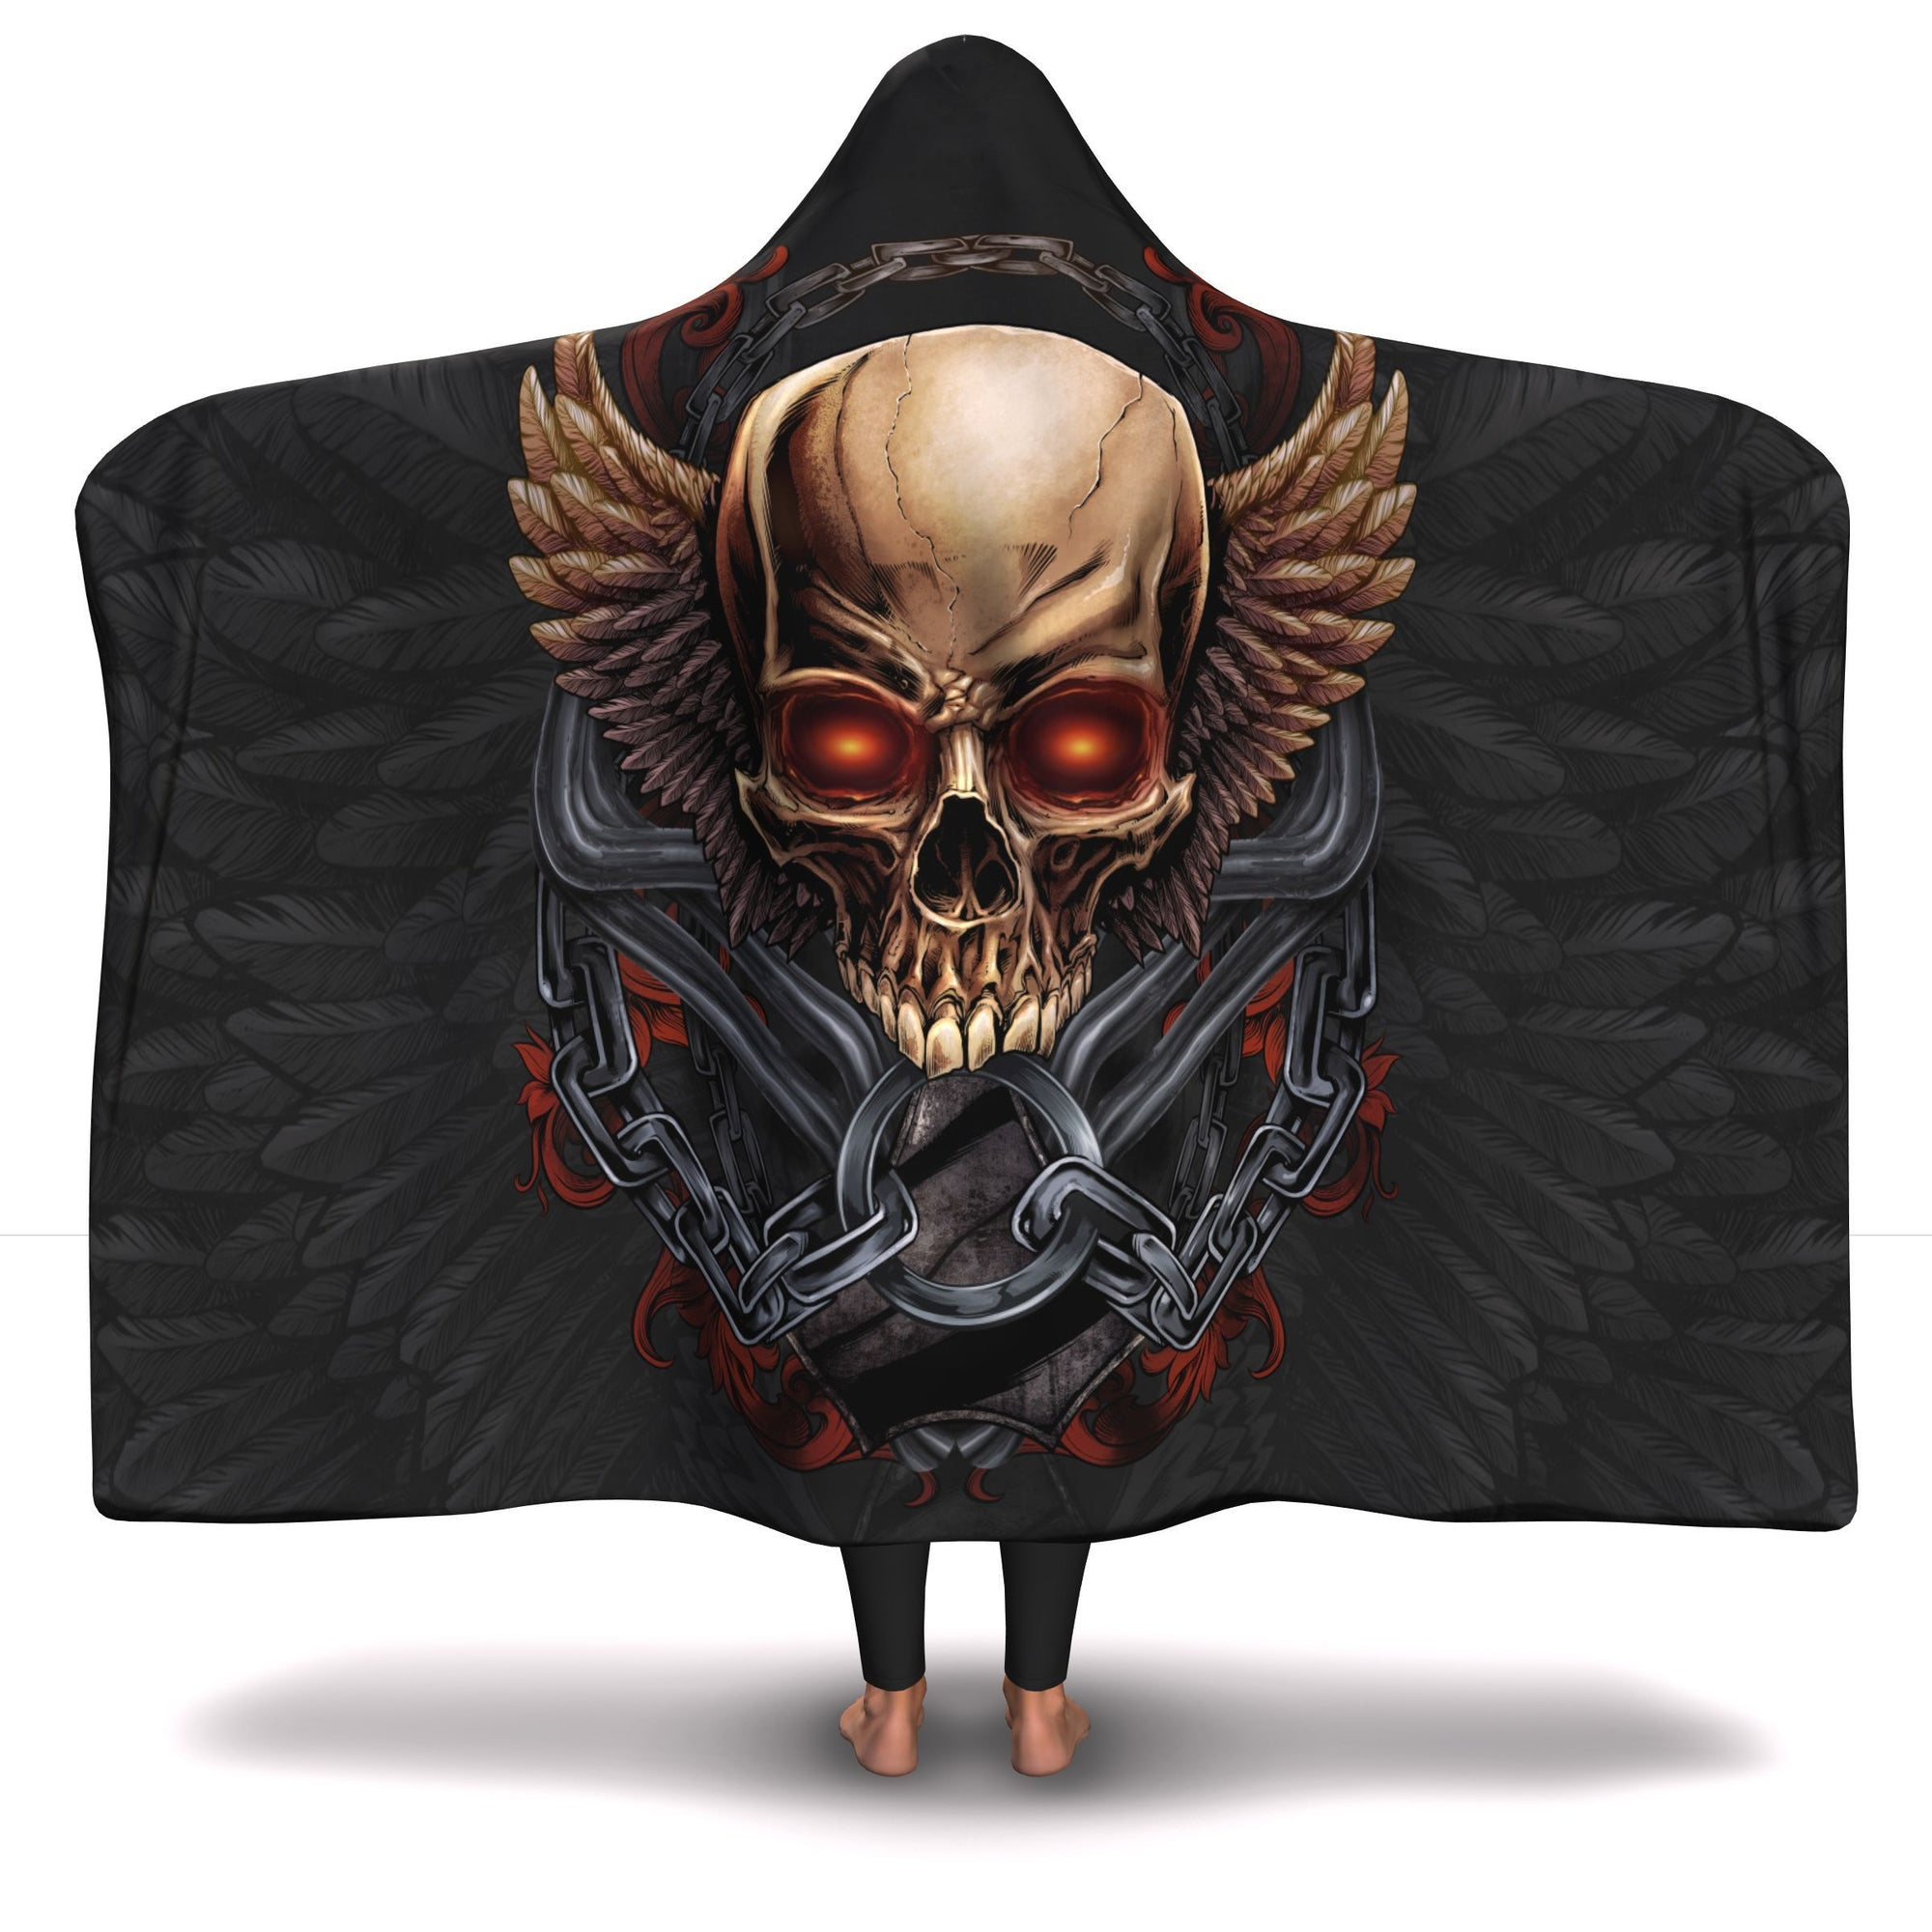 Skull & Wings Hooded Blanket